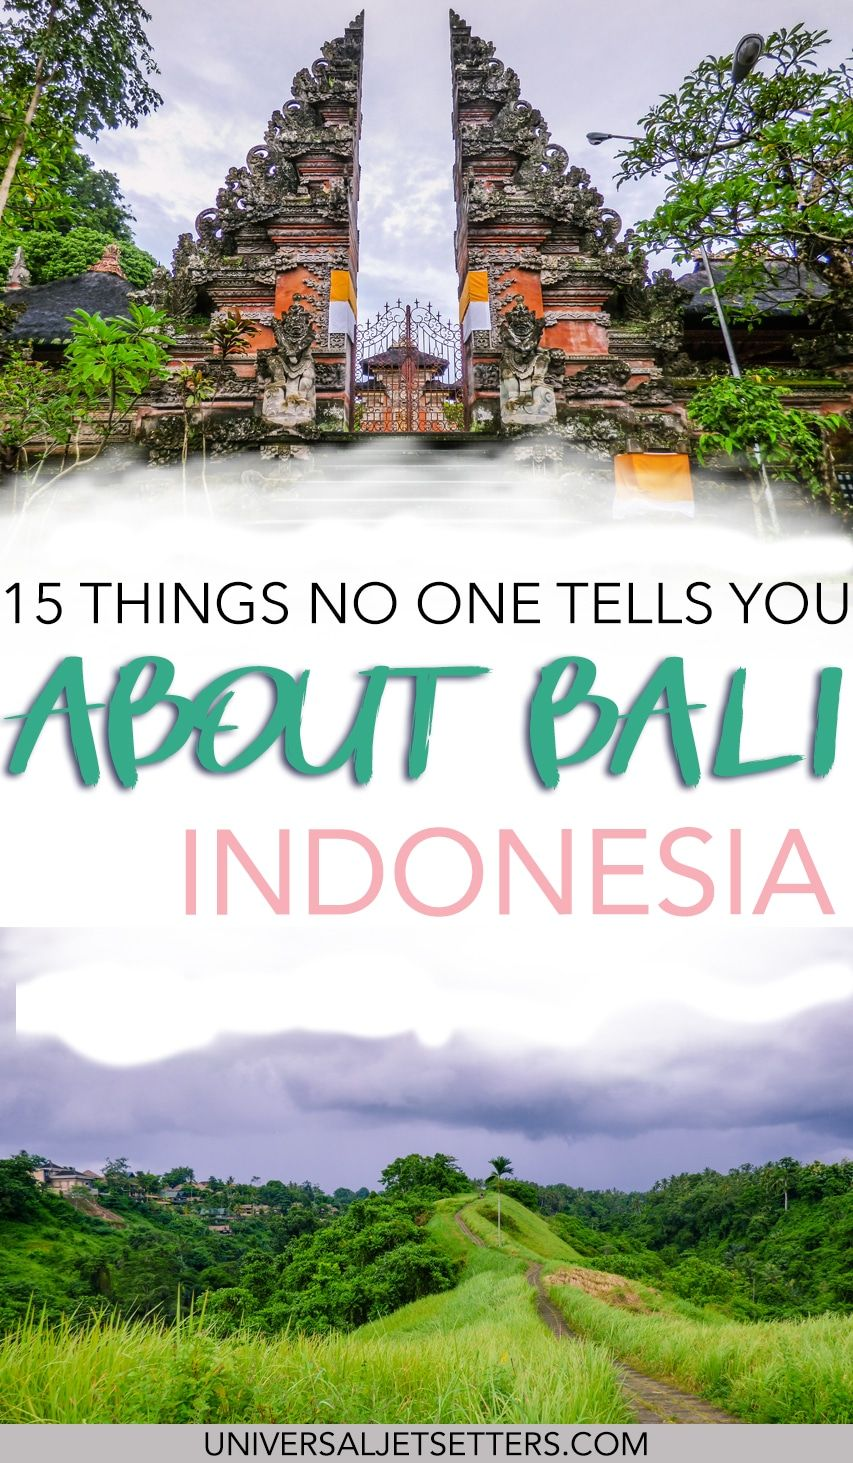 Read about all the things no one tells you about Bali, Indonesia from the best things to do, why watch sunrises and sunsets, where the best photography opportunities are, why you should prioritize Ubud, among other things.